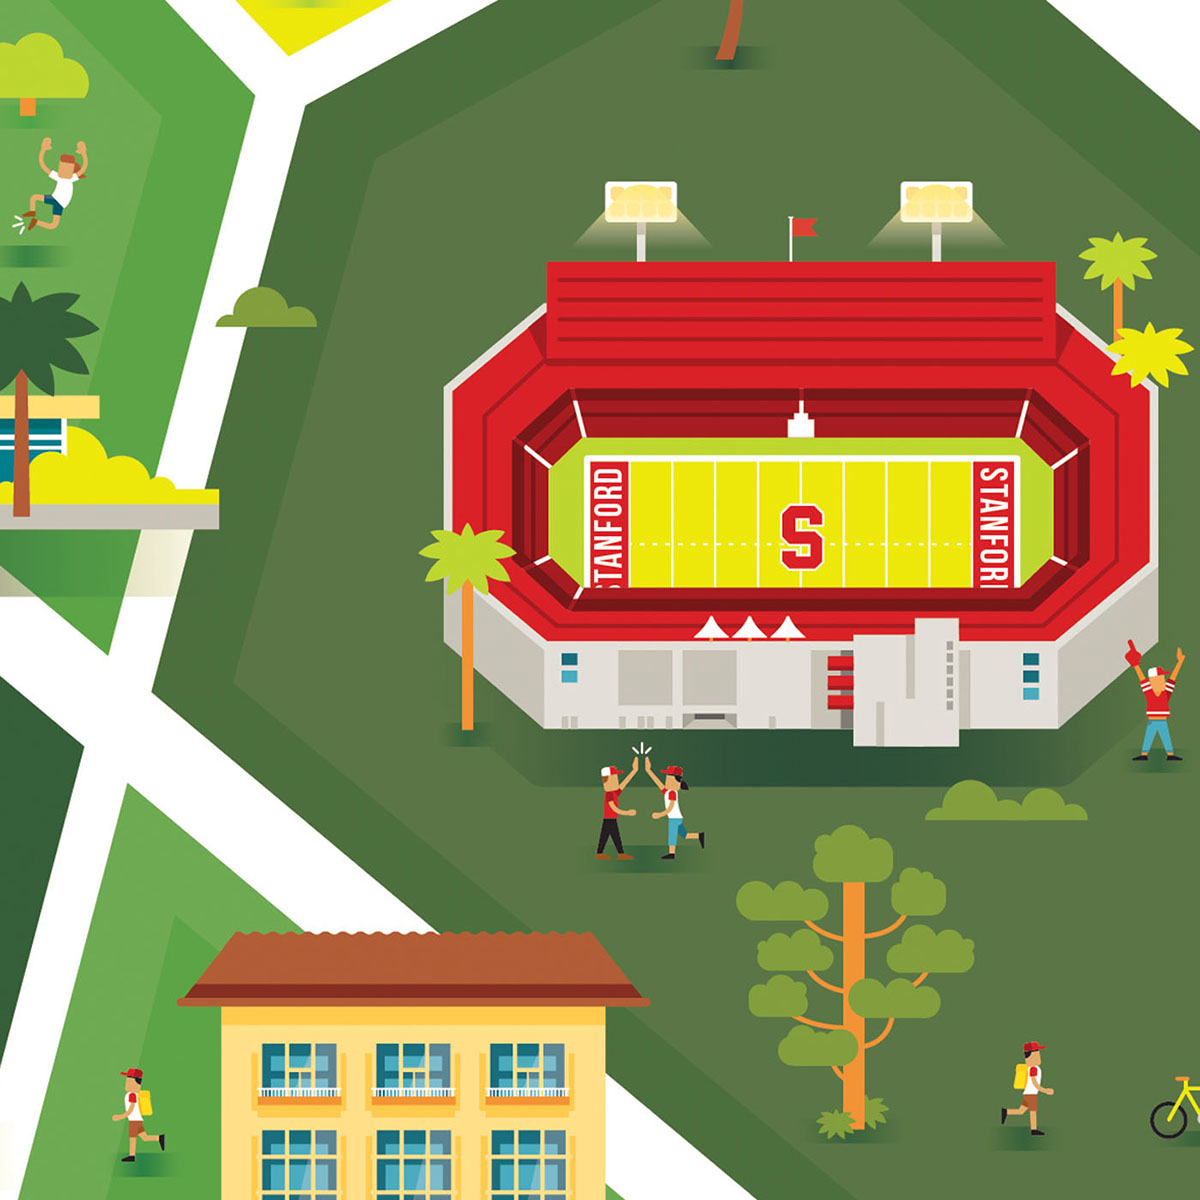 Stanford University Campus Map on Pantone Canvas Gallery